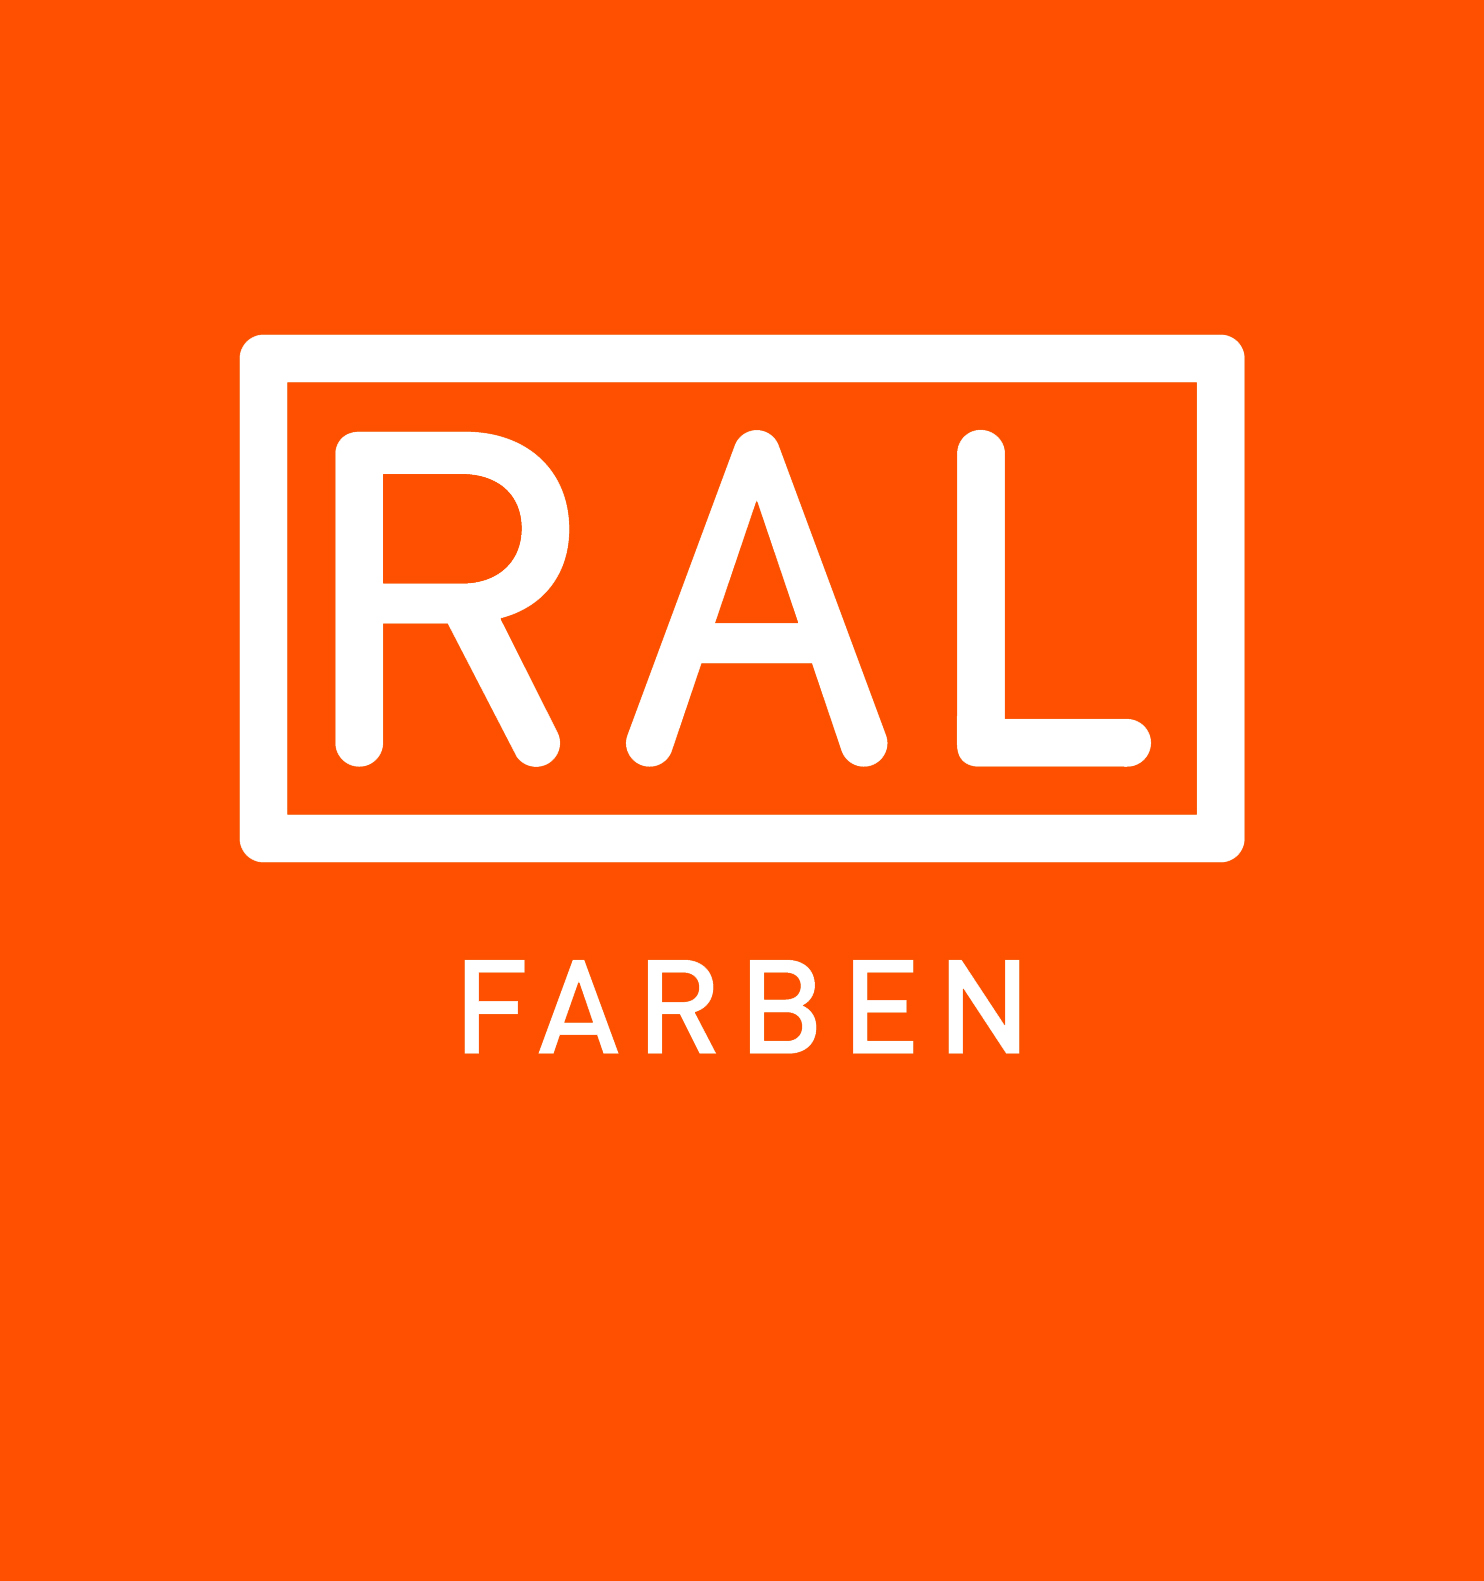 Ral Farben Ambista B2b Network Of The Furnishing Industry